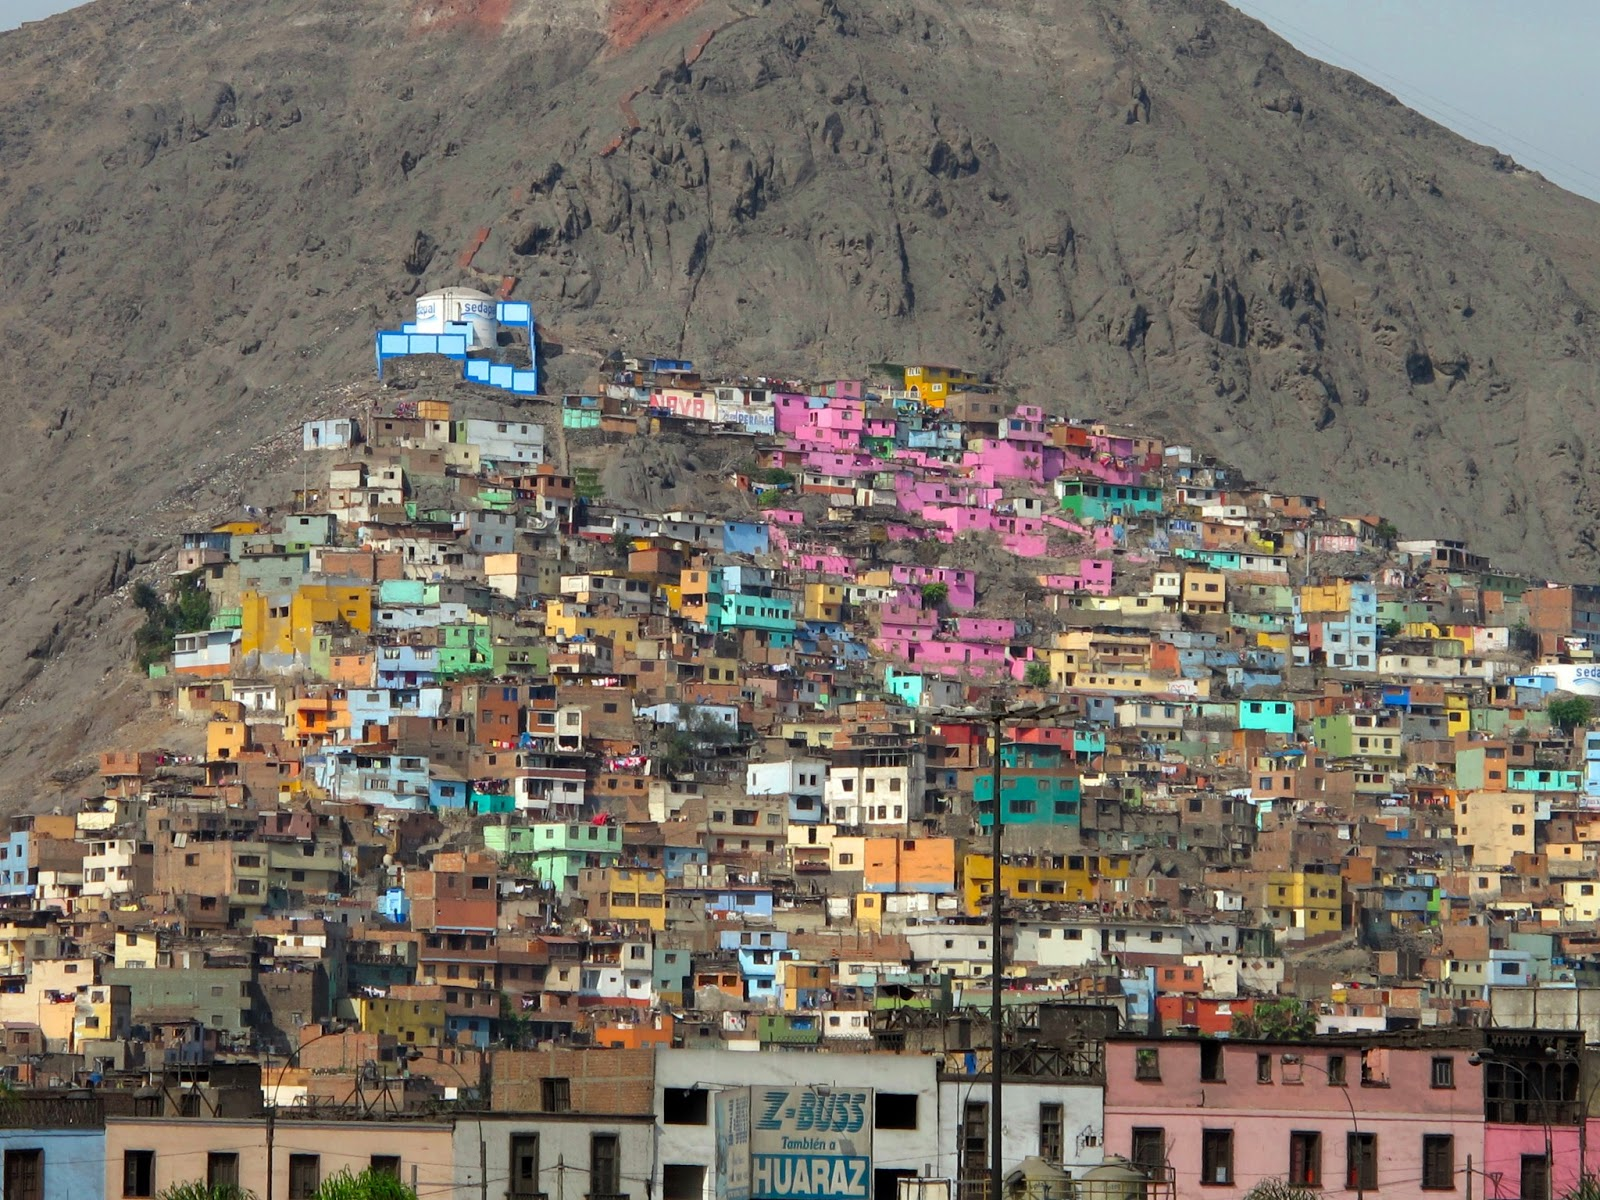 peru peruvian migration to lima The effect of rural-to-urban migration on social capital and common mental disorders: peru migrant study.